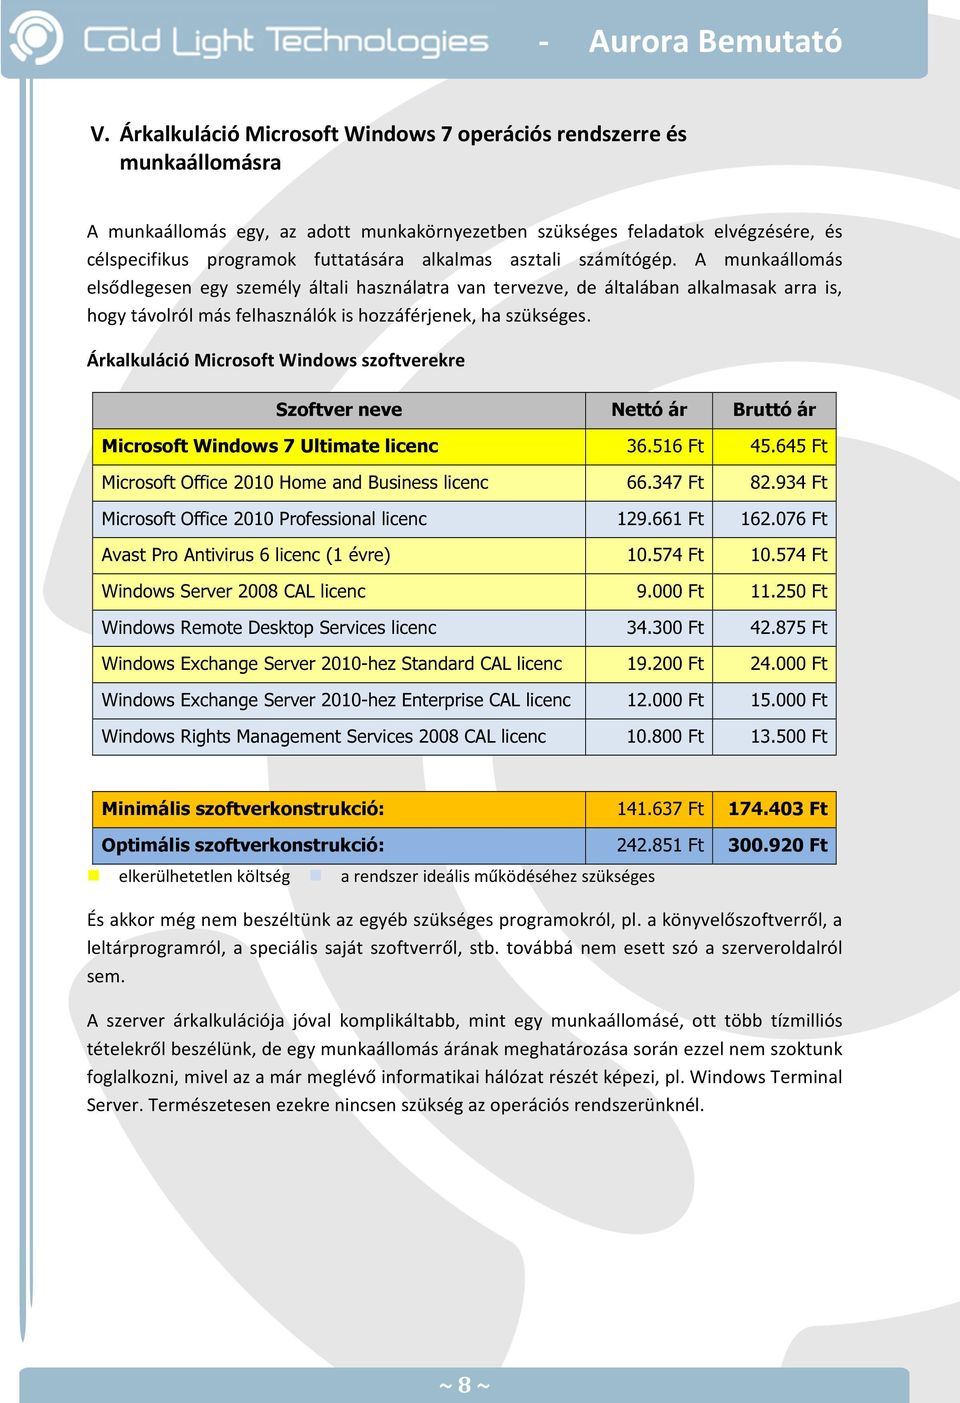 Árkalkuláció Microsoft Windows szoftverekre Szoftver neve Nettó ár Bruttó ár Microsoft Windows 7 Ultimate licenc 36.516 Ft 45.645 Ft Microsoft Office 2010 Home and Business licenc 66.347 Ft 82.